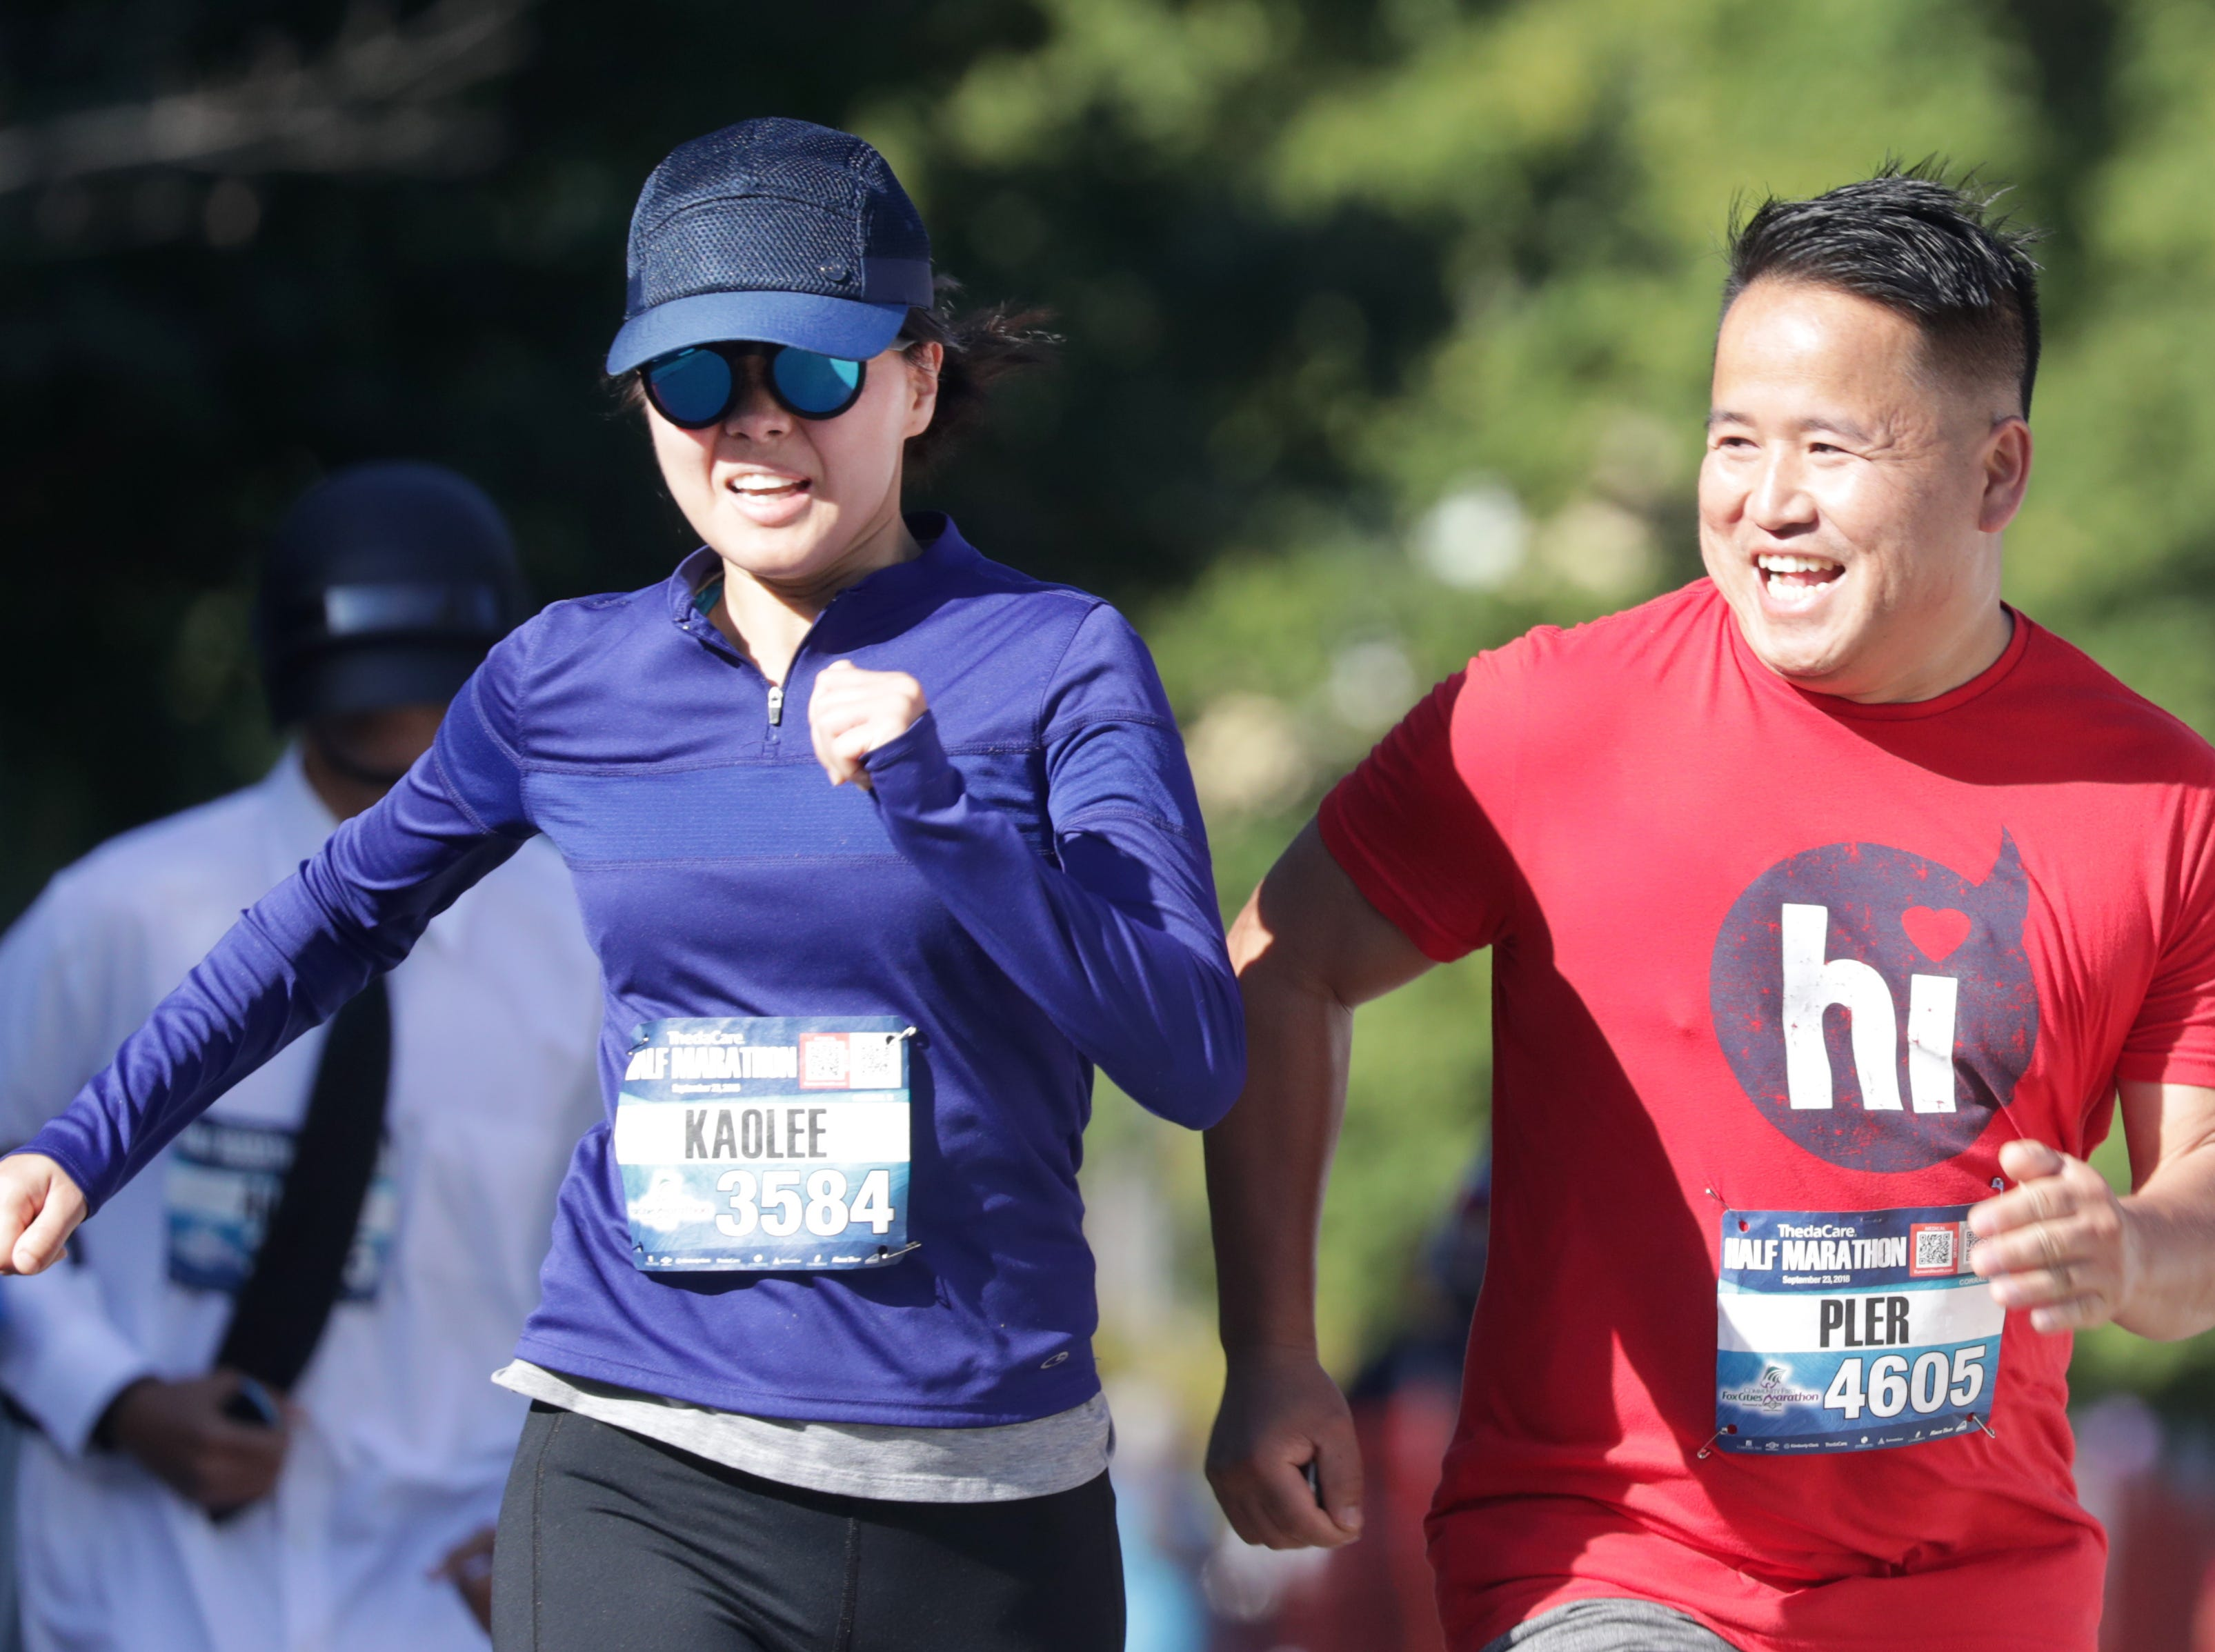 Kaolee Hoyle and Pler Yang crosse the finish line in the half marathon event during the 28th annual Community First Fox Cities Marathon on Sept. 23, 2018, in Neenah, Wis.